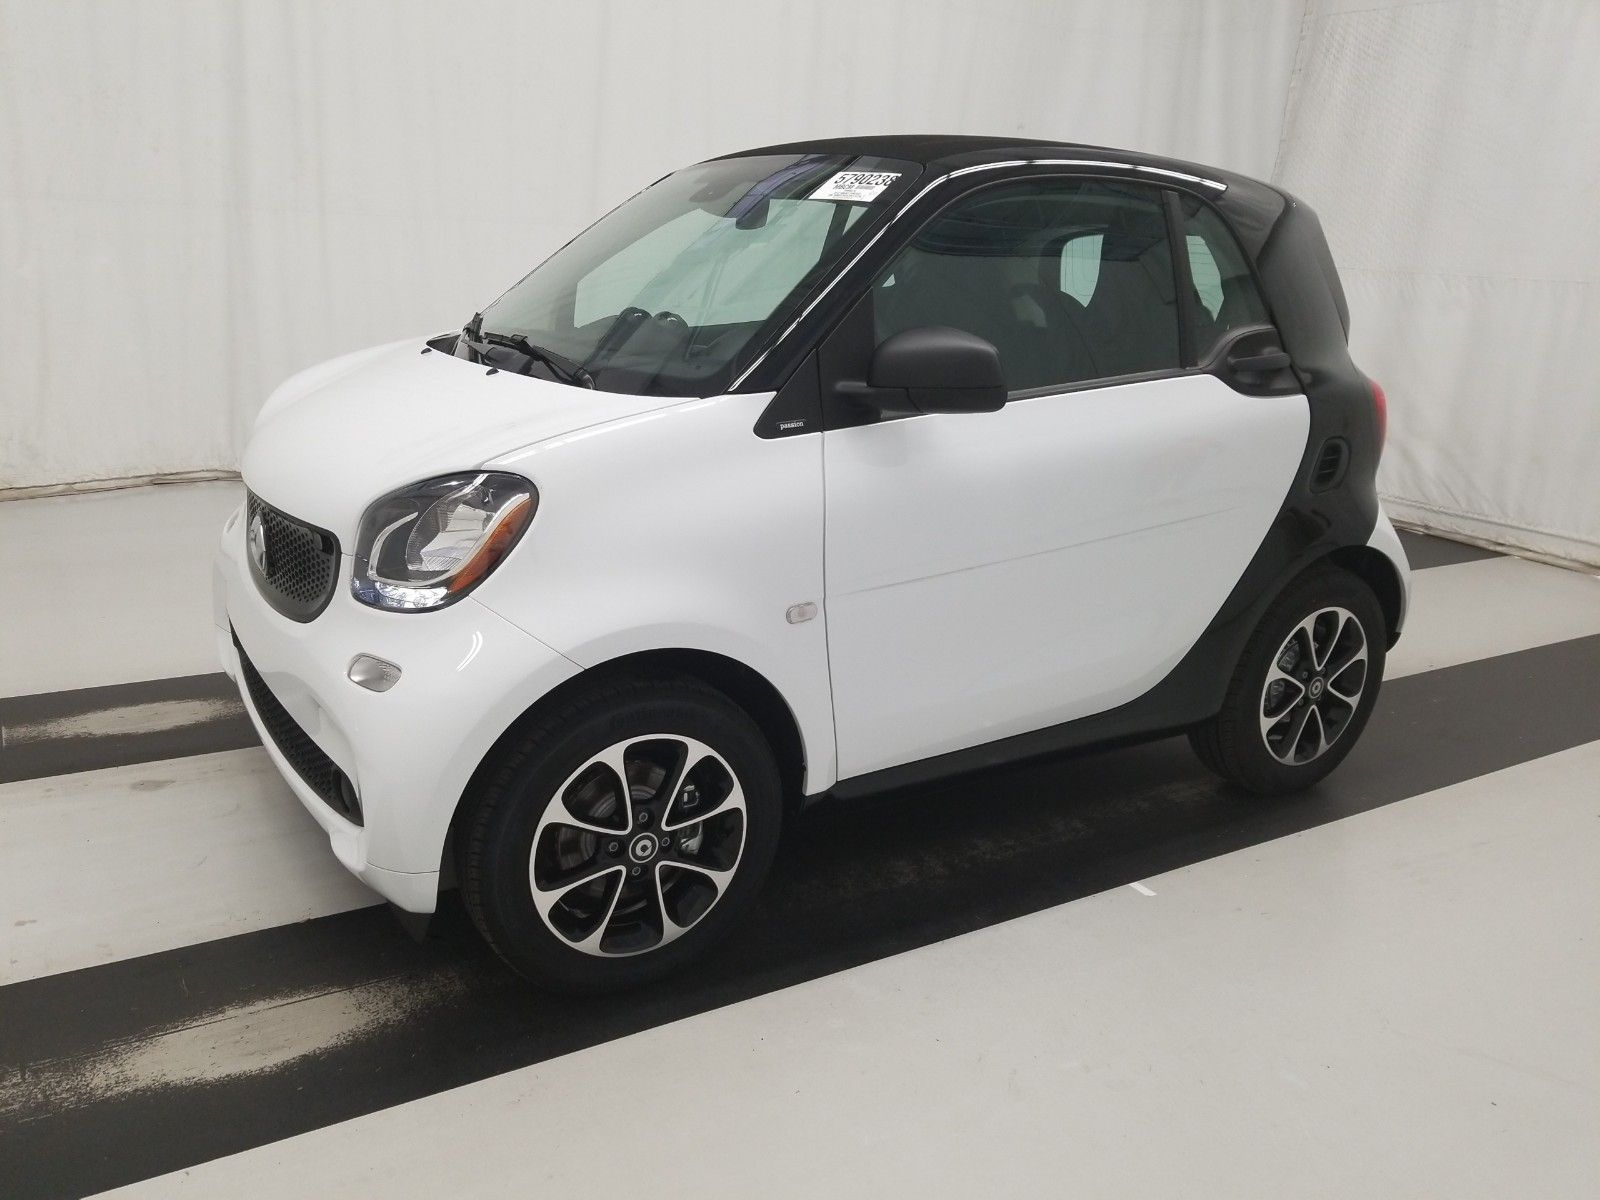 Used Car Auction Export Auctionxm Smart Fuel Filter Location 2017 Fortwo